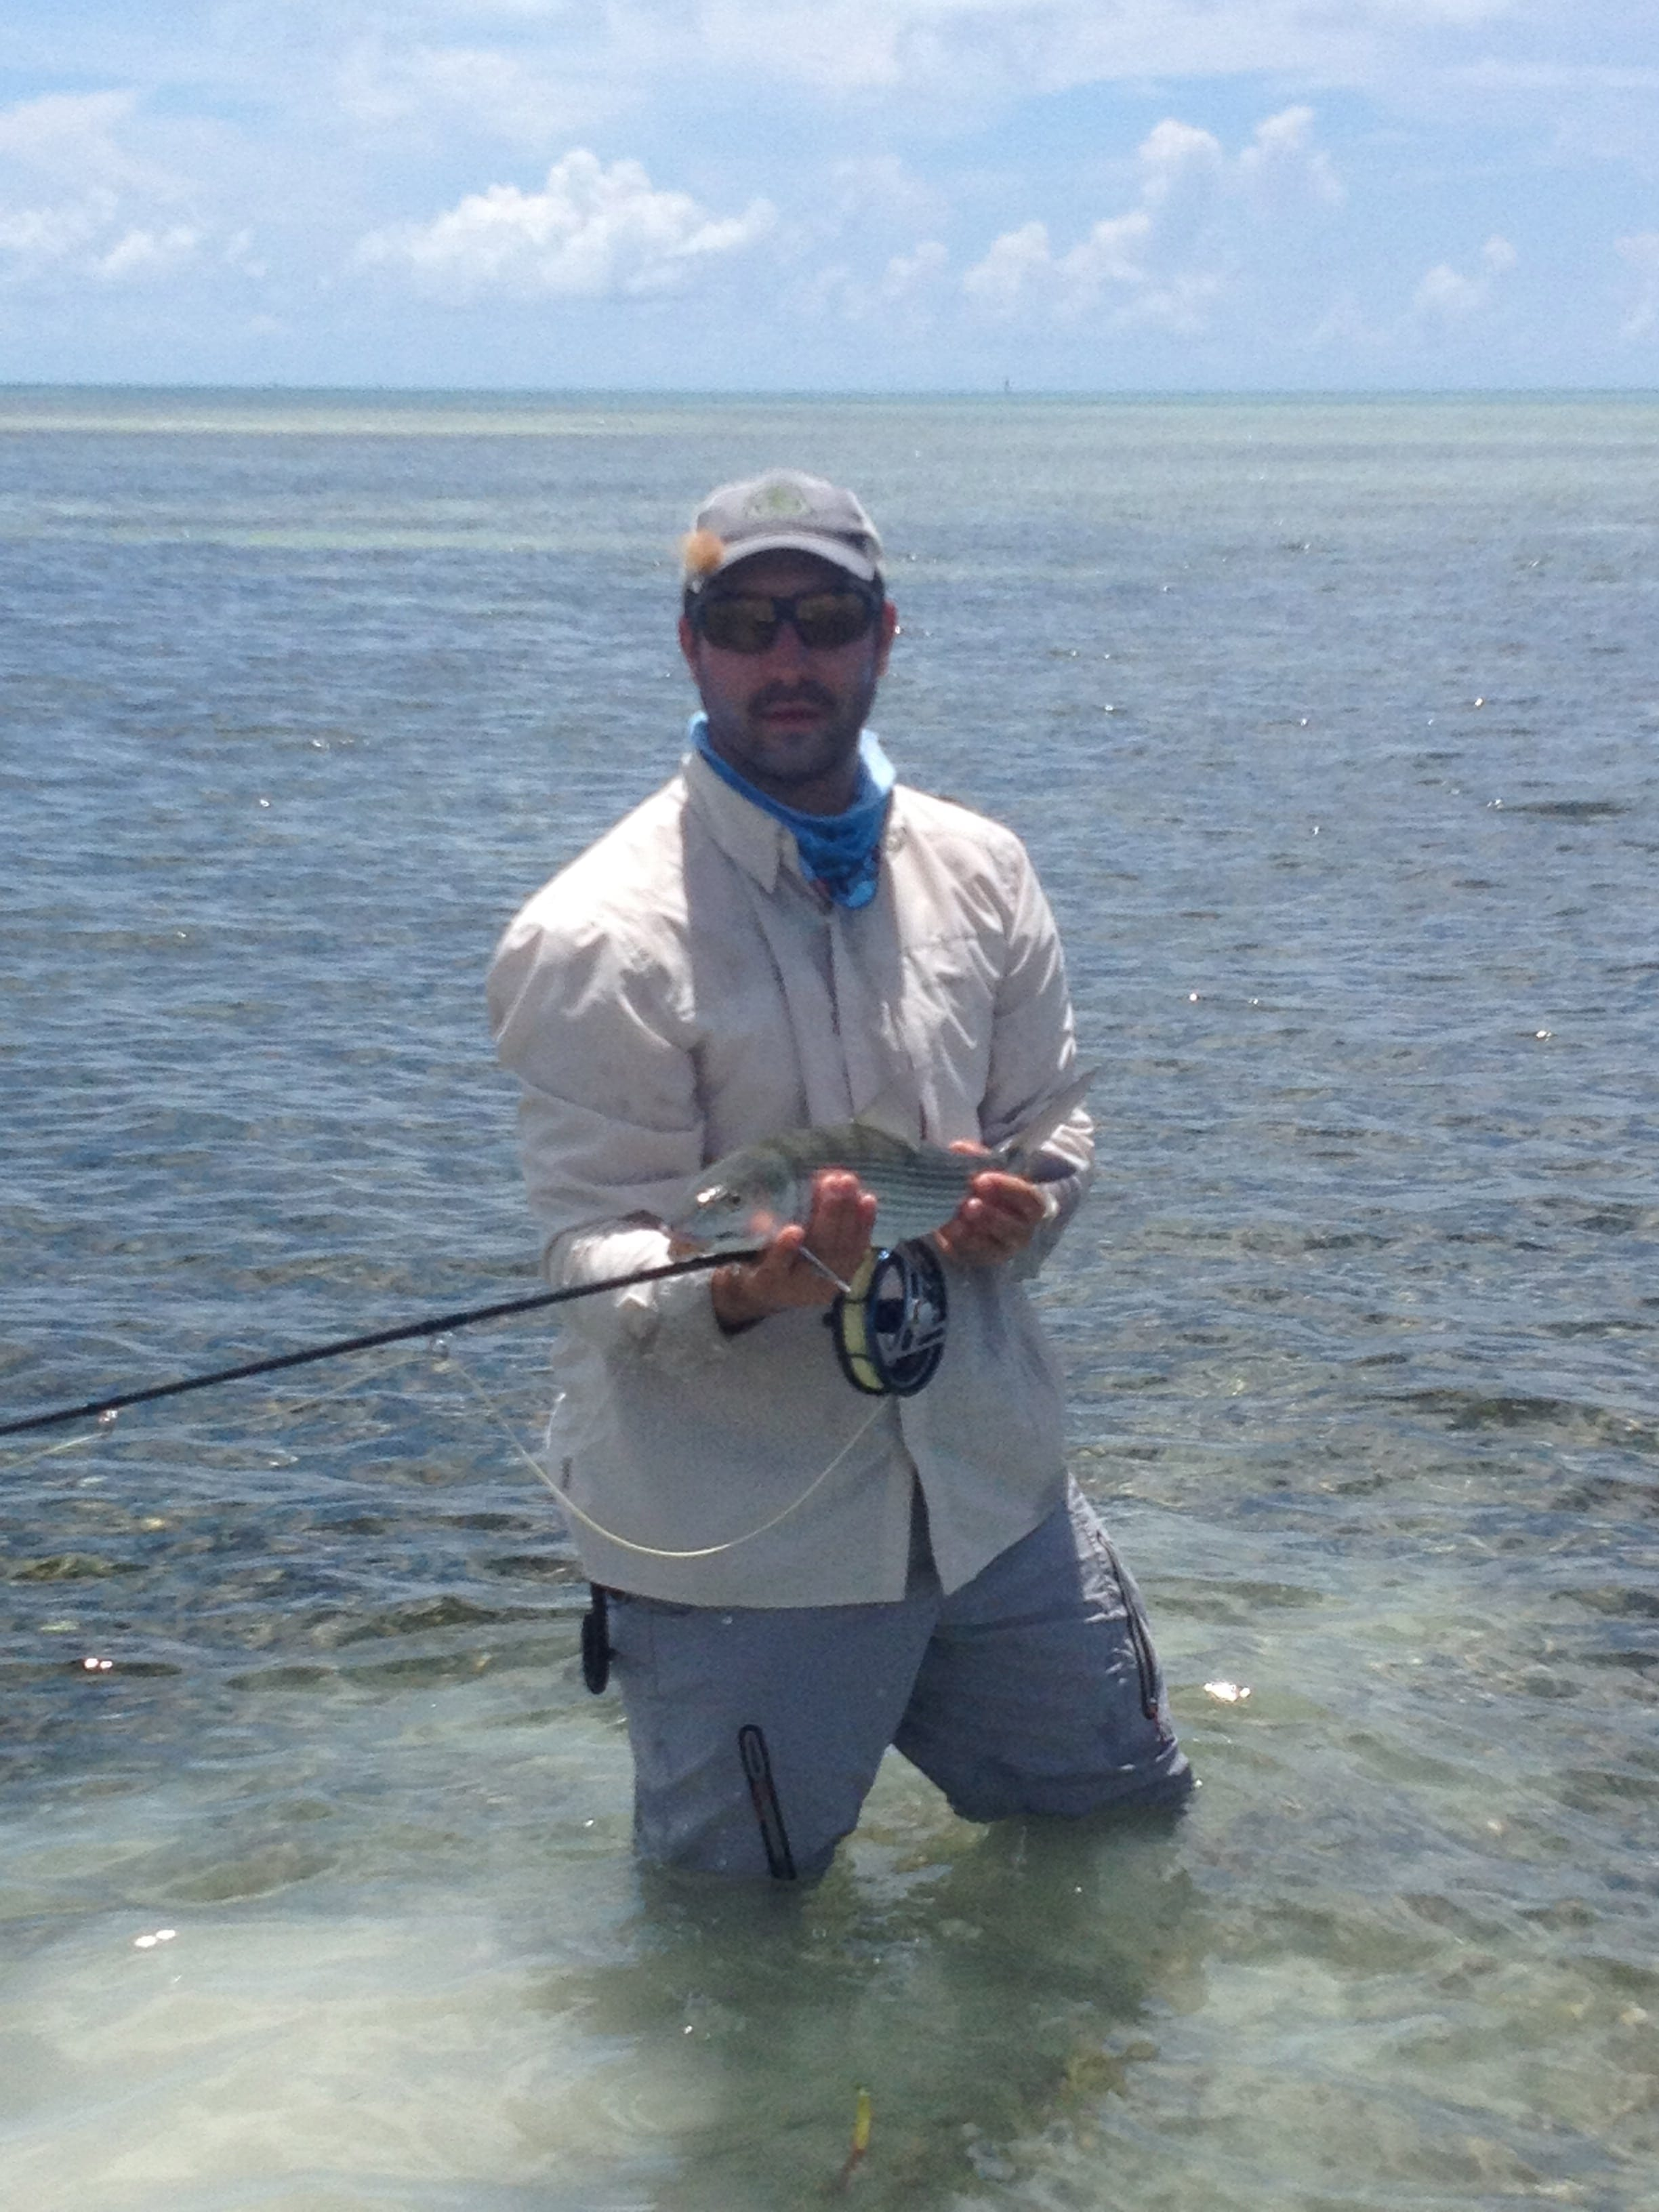 2 August, 2014. A bonefish, on 2 lb tippet. John O'Hearn guiding/photo. While not the permit we were looking for, this was a nice addition to a light tippet excursion.